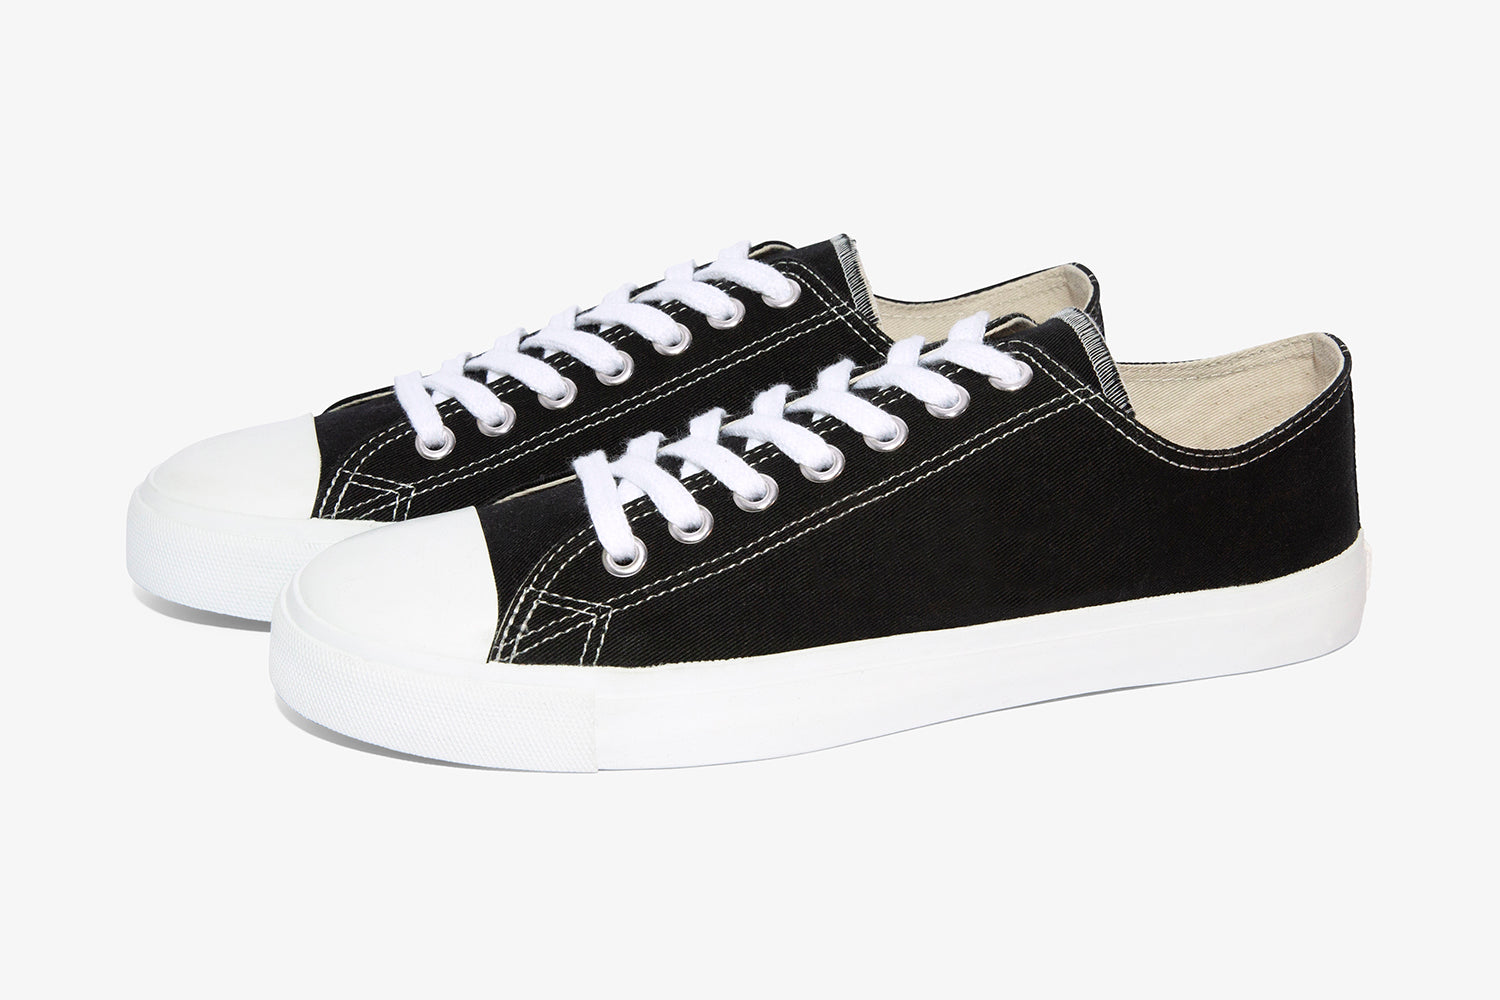 Black Low top canvas sneaker